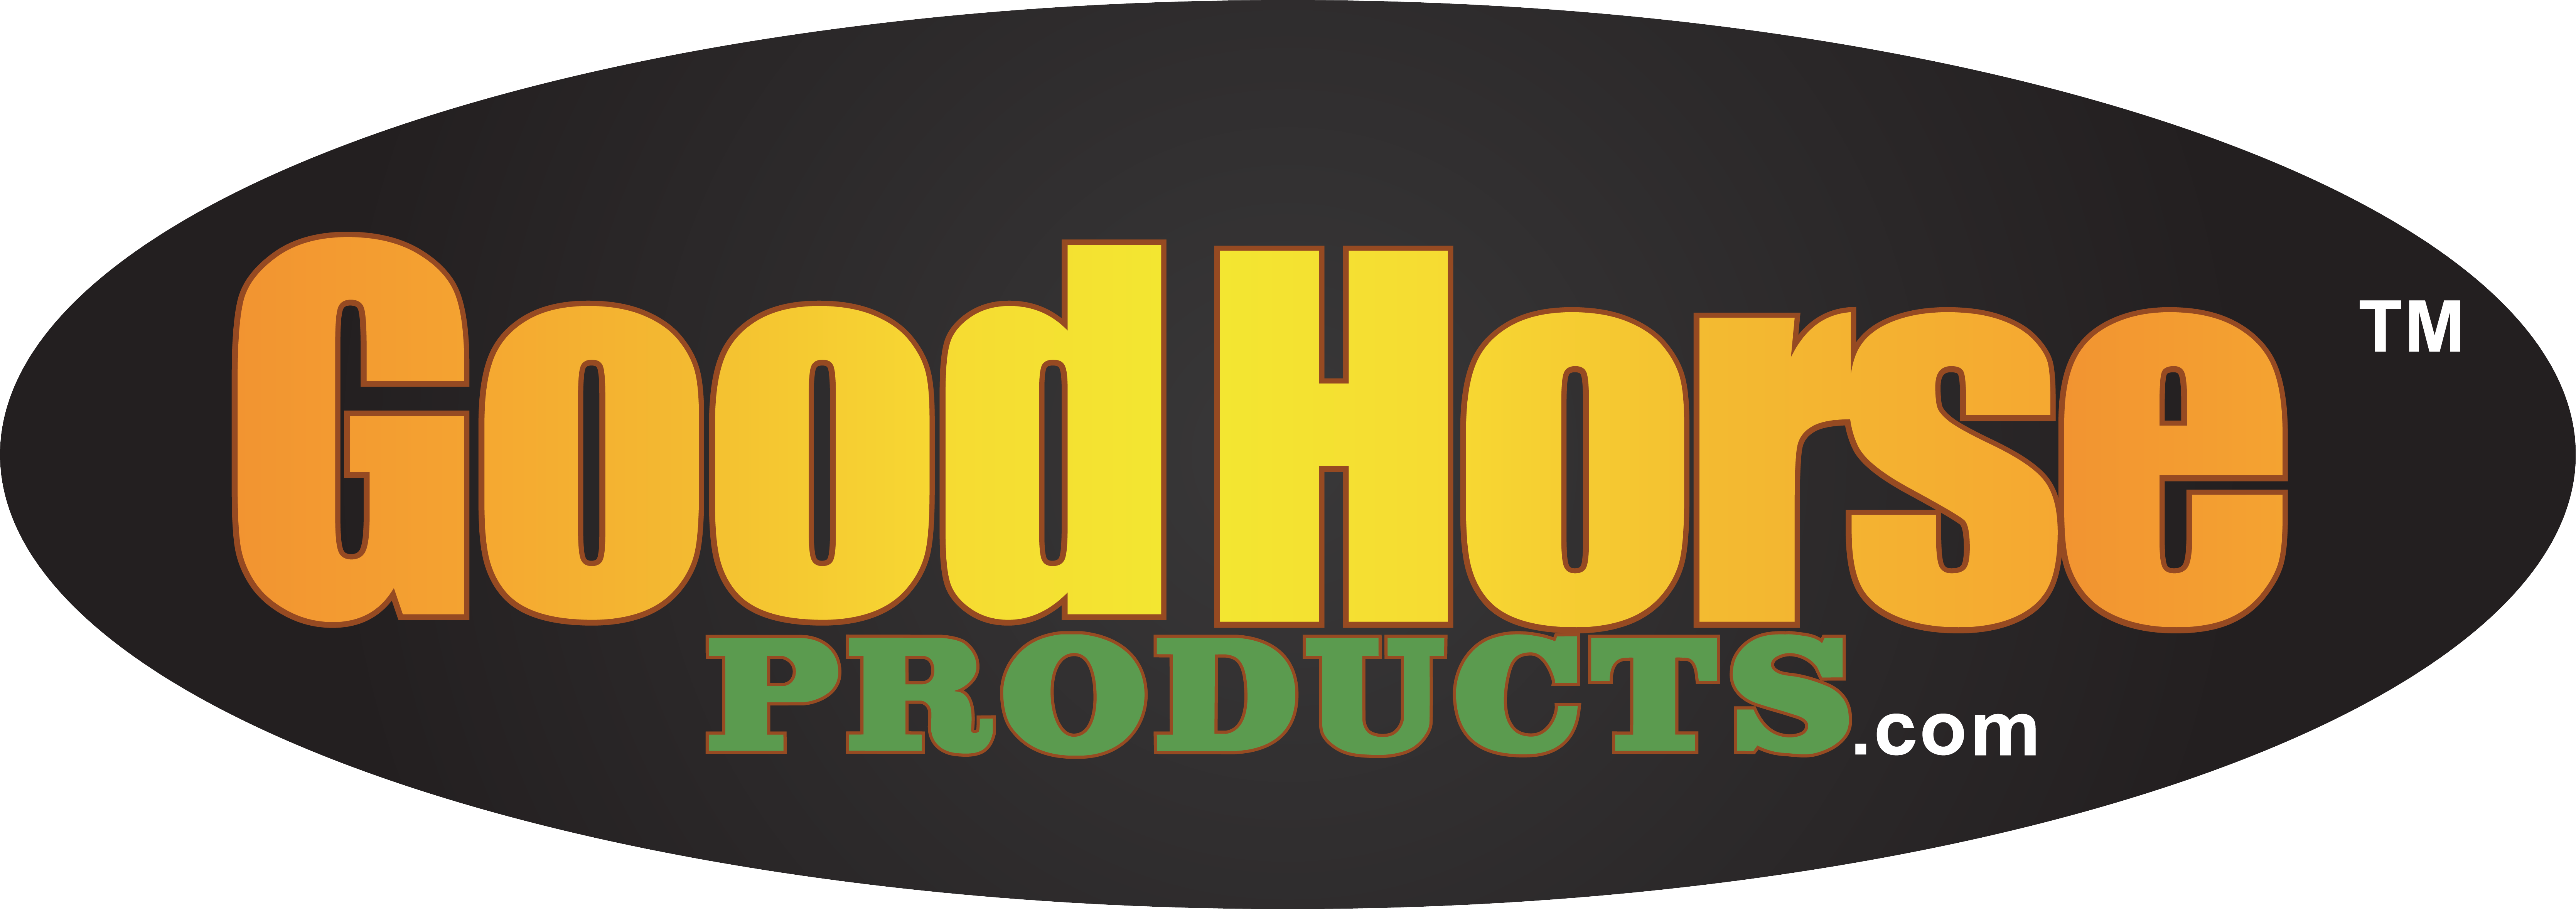 GoodHorseProducts.com